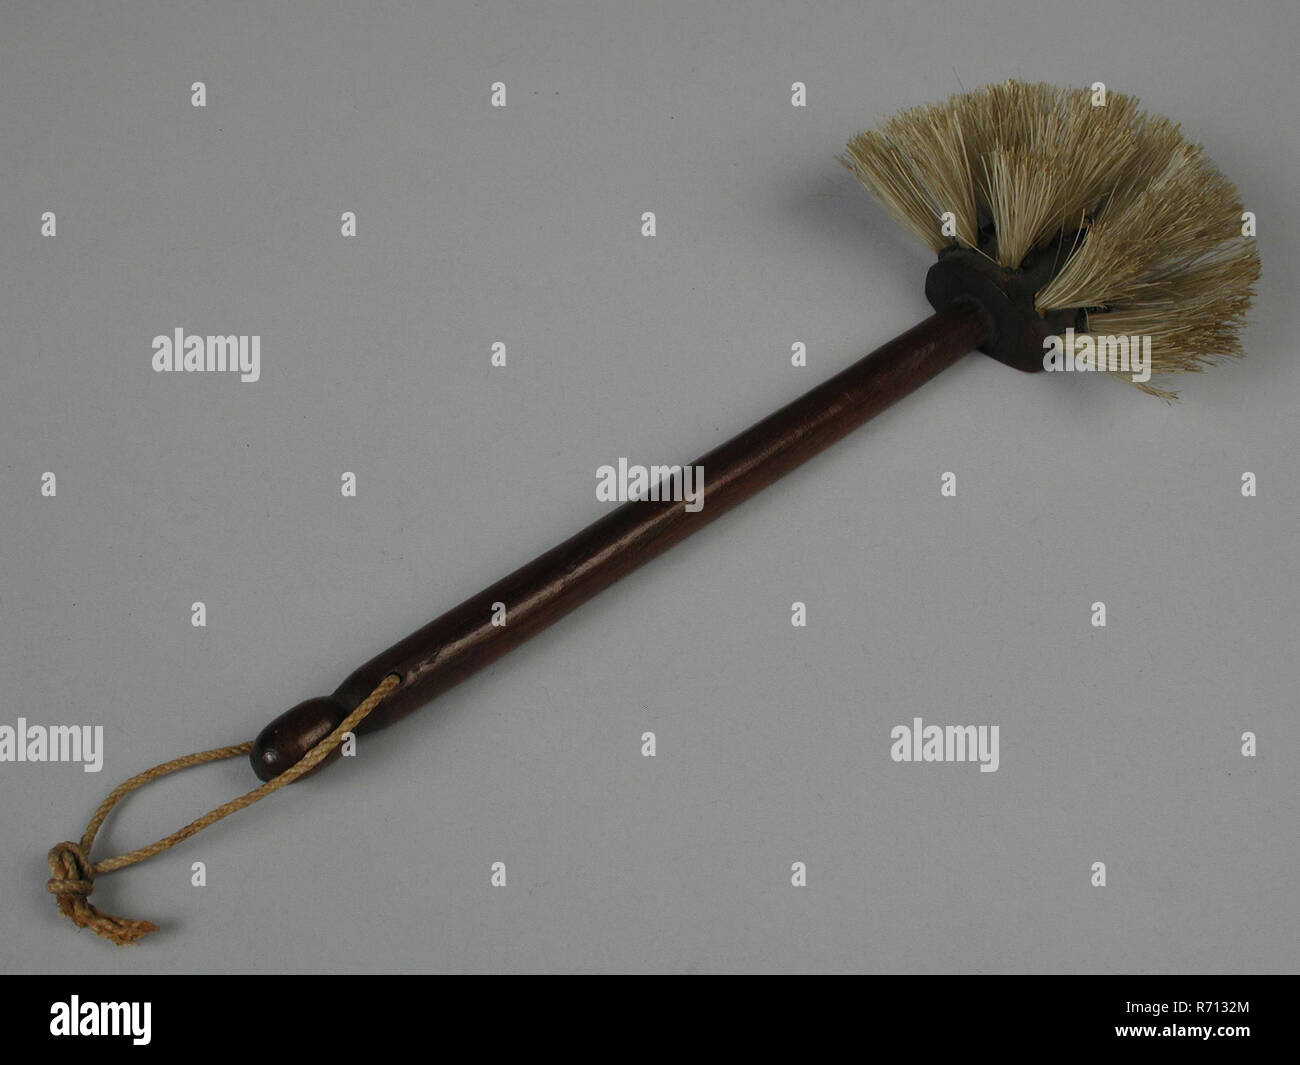 Te Poel, Mahogany miniature window brush, pan brush brush kitchen utensils miniature toy relaxant model wood Mahogany twisted stem natural colored hair semi-circular shaved at end of long handle hanging rope 1868 Sibilla van Embden playing cleaning - Stock Image